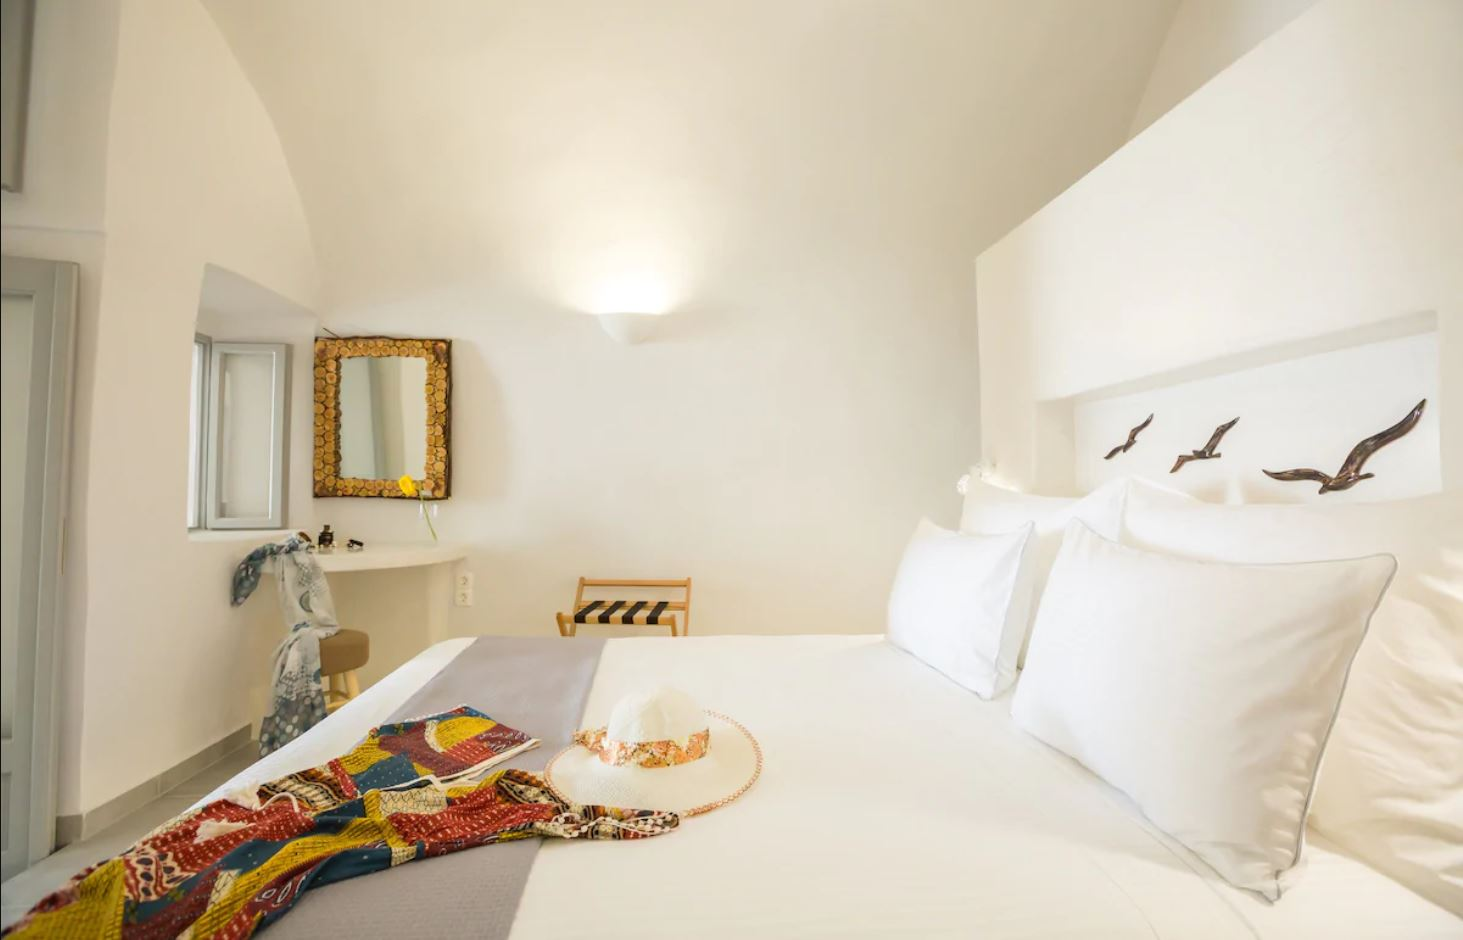 3. Luxury Cave Villa with Jacuzzi and Stunning Views - Santorini Airbnb